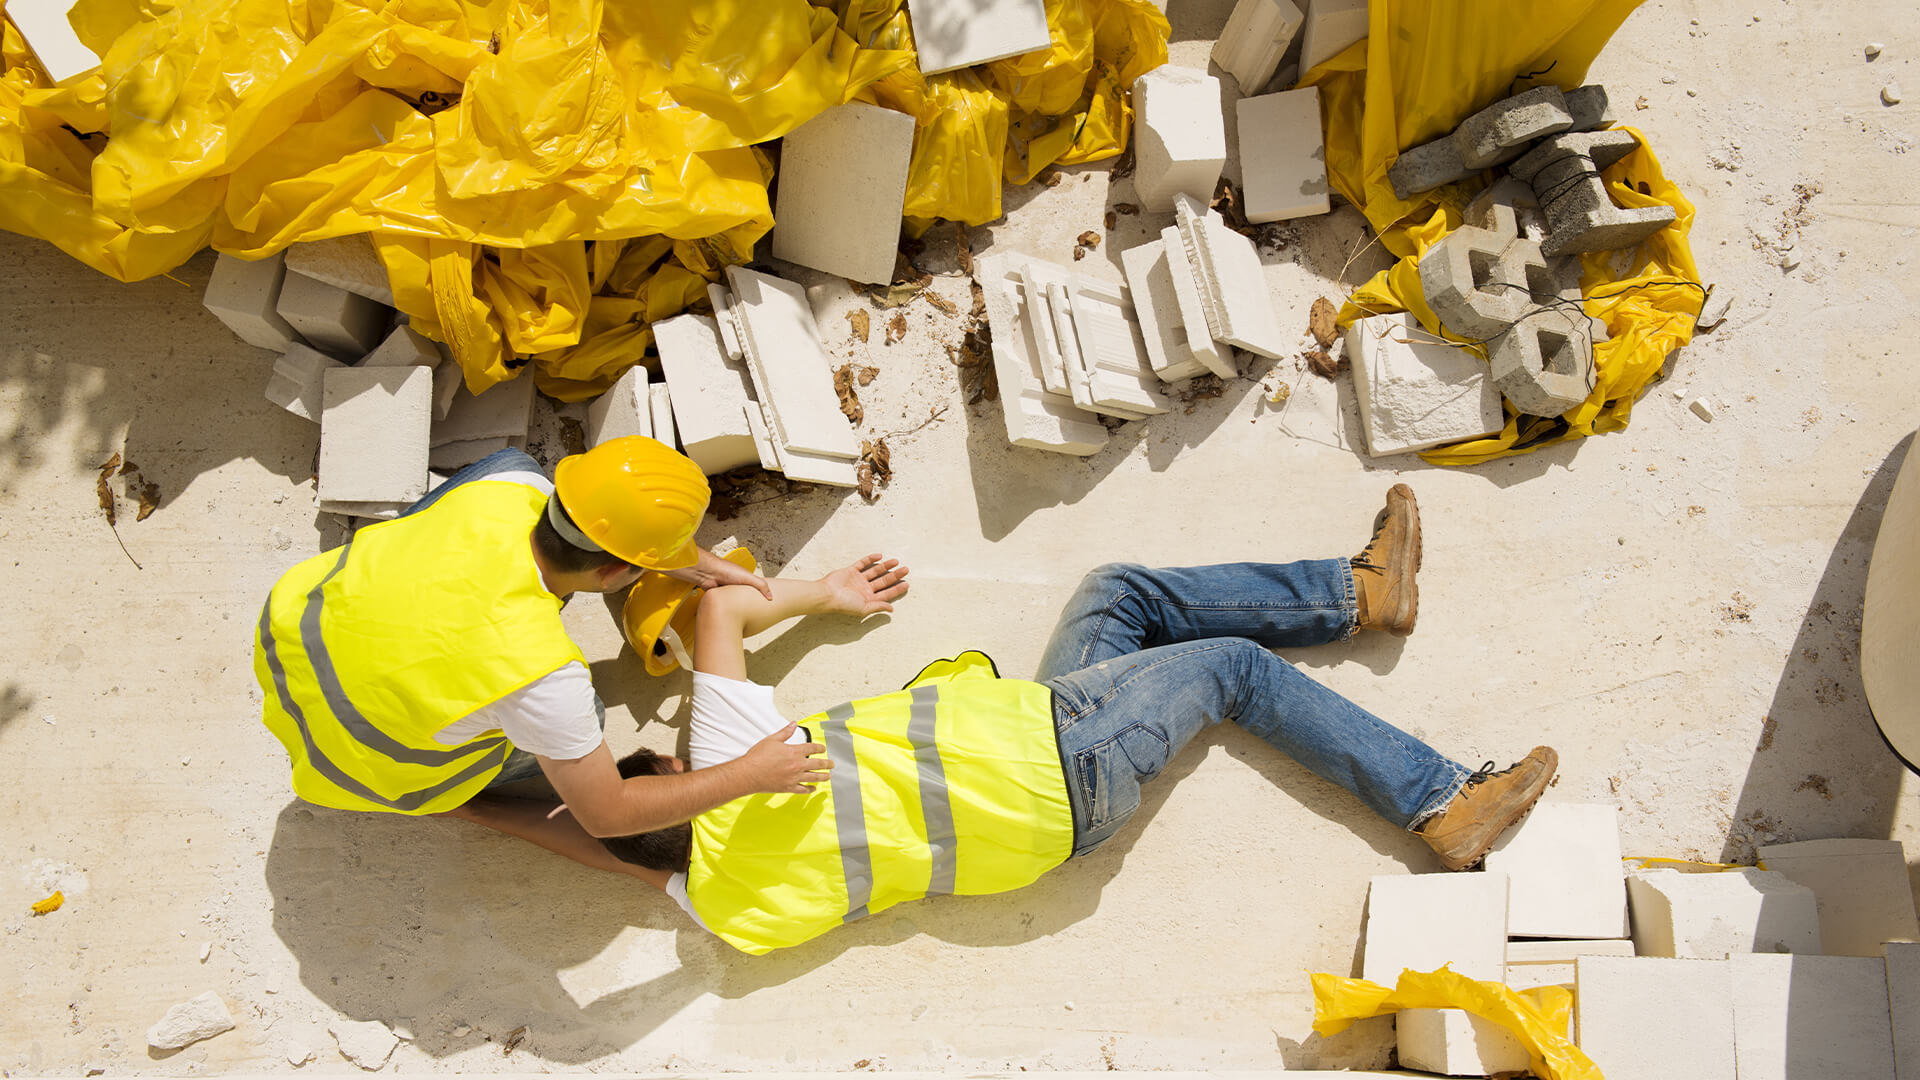 First aid construction worker helping an injured colleague